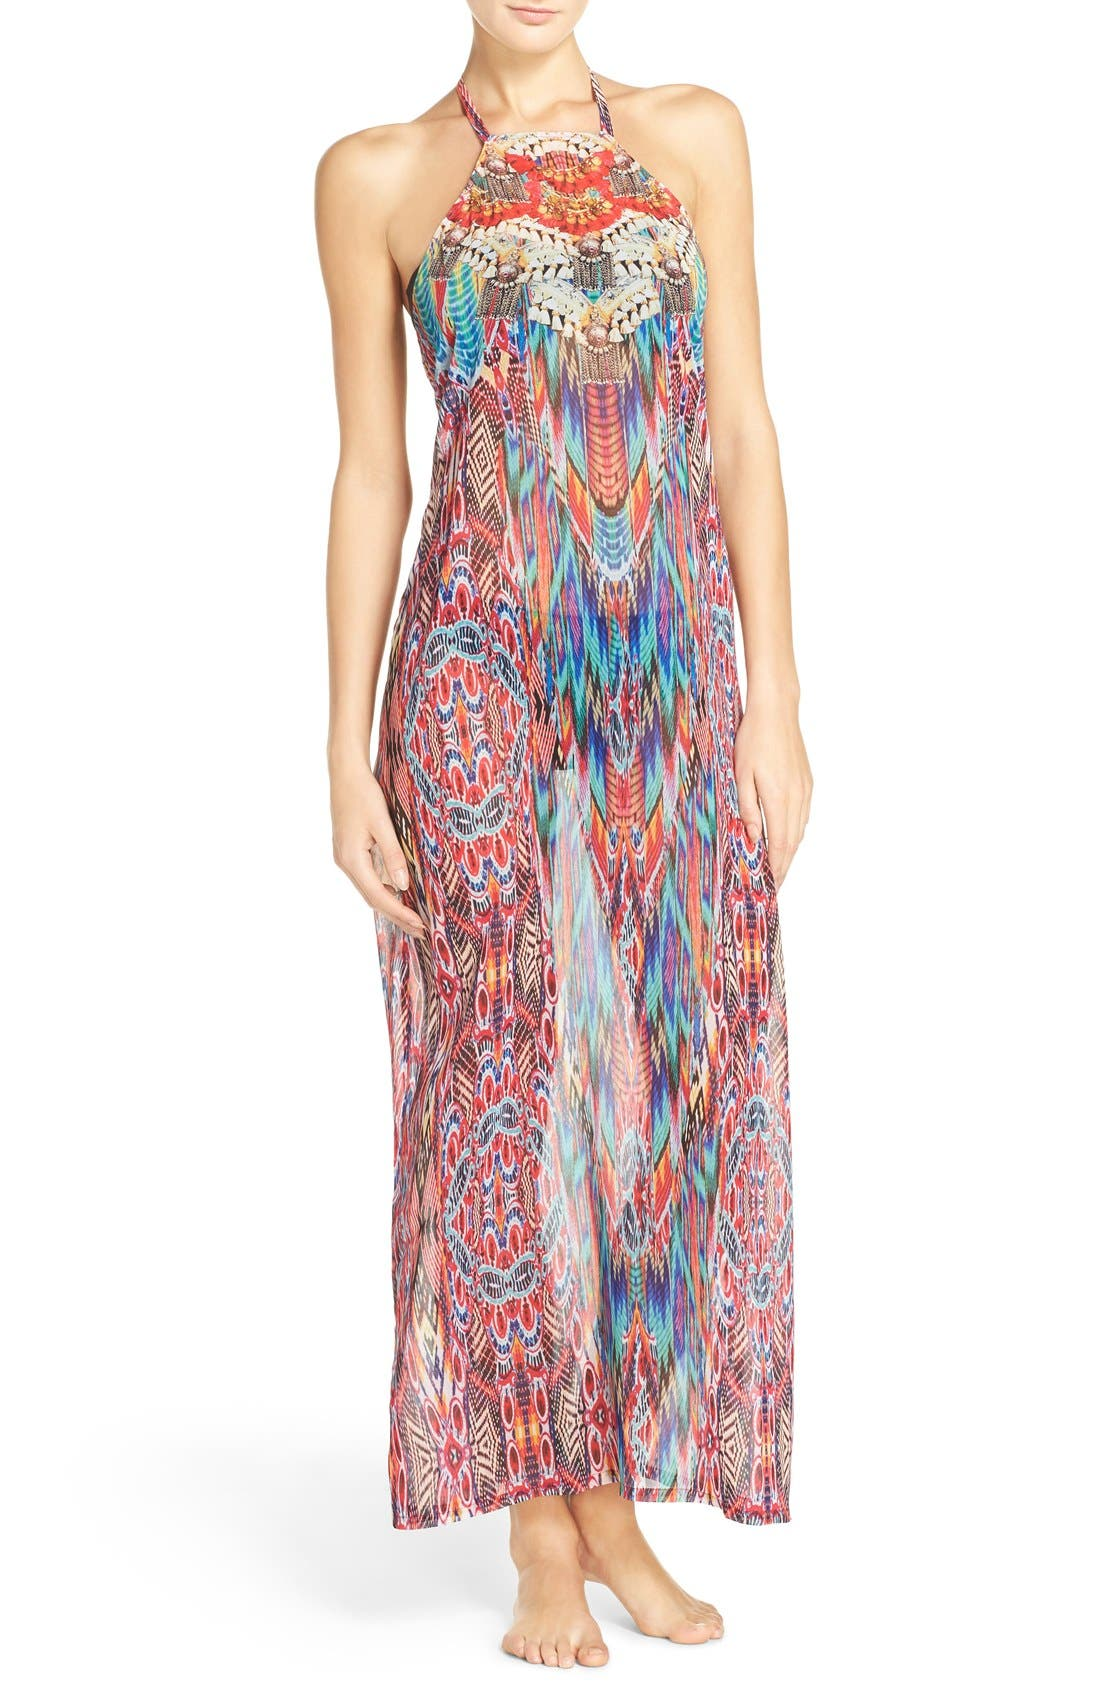 Laundry by Shelli Segal Halter Cover-Up Maxi Dress